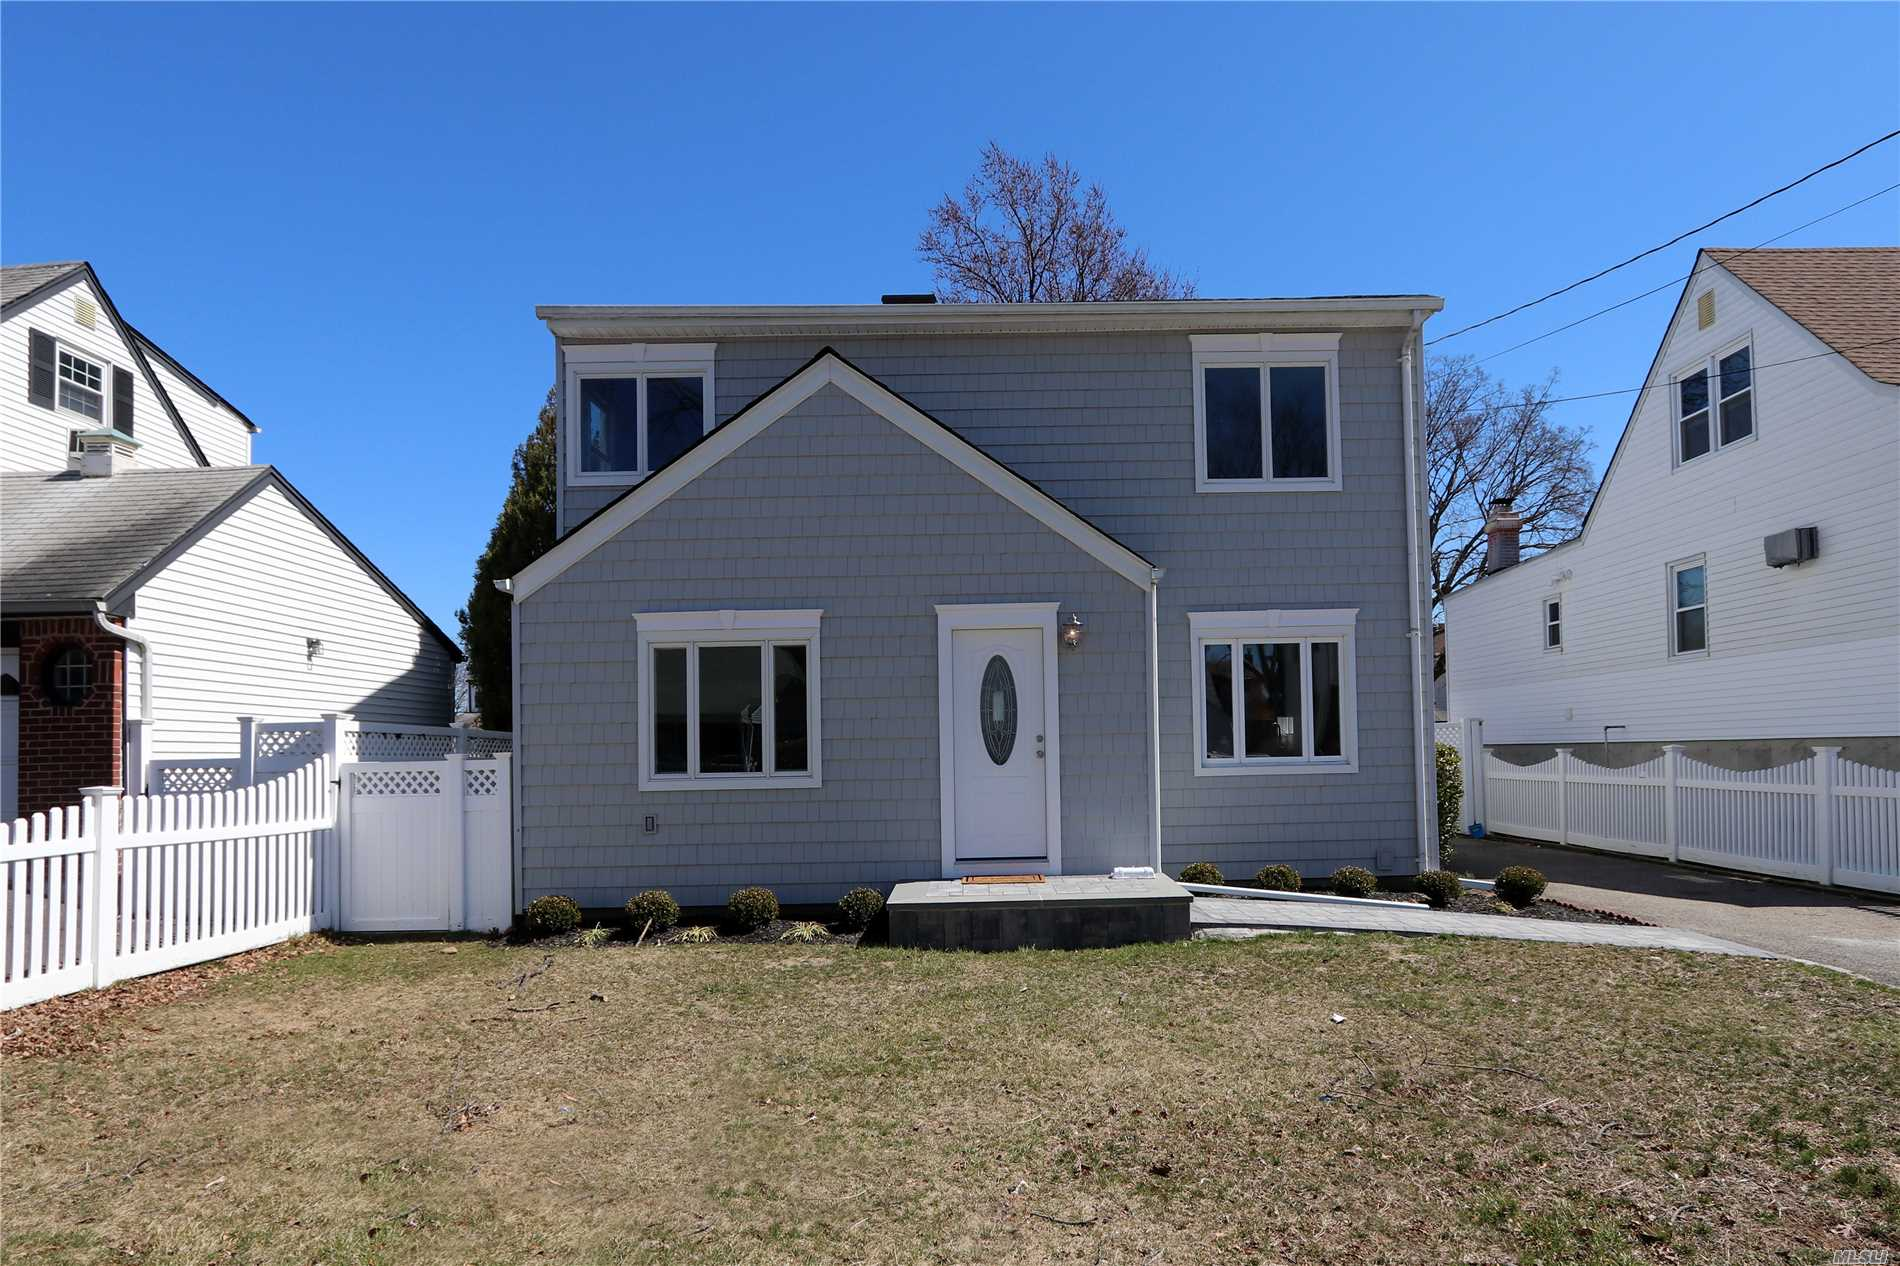 Beautiful renovated 4 BR colonial in South Seaford. This home features an Open Concept, beautiful kitchen with grunite counters stainless steel appliances hardwood floors, new bathrooms and Trex Deck. House is Move-In ready. Flood Zone X -- All you need to do is unpack!!